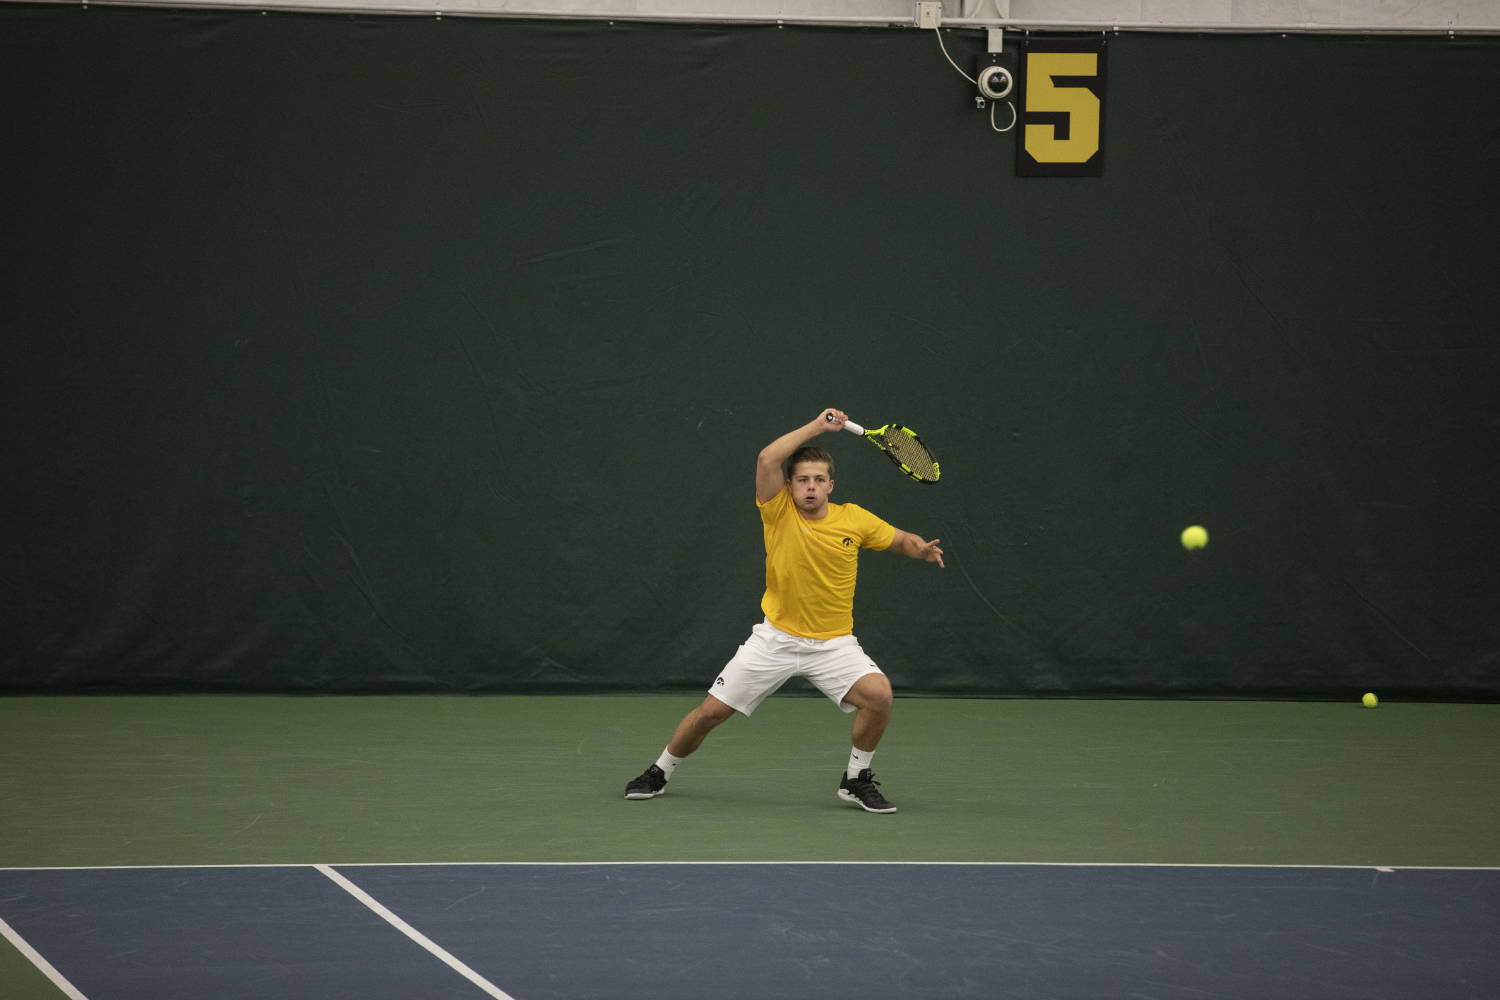 Will+Davies+hits+a+forehand+during+the+Men%27s+tennis+match+against+University+of+Utah+at+the+Hawkeye+Tennis+and+Recreation+Complex+on+Feb.+10%2C+2019.+The+Hawkeye+team+defeated+Utah+5-2.+